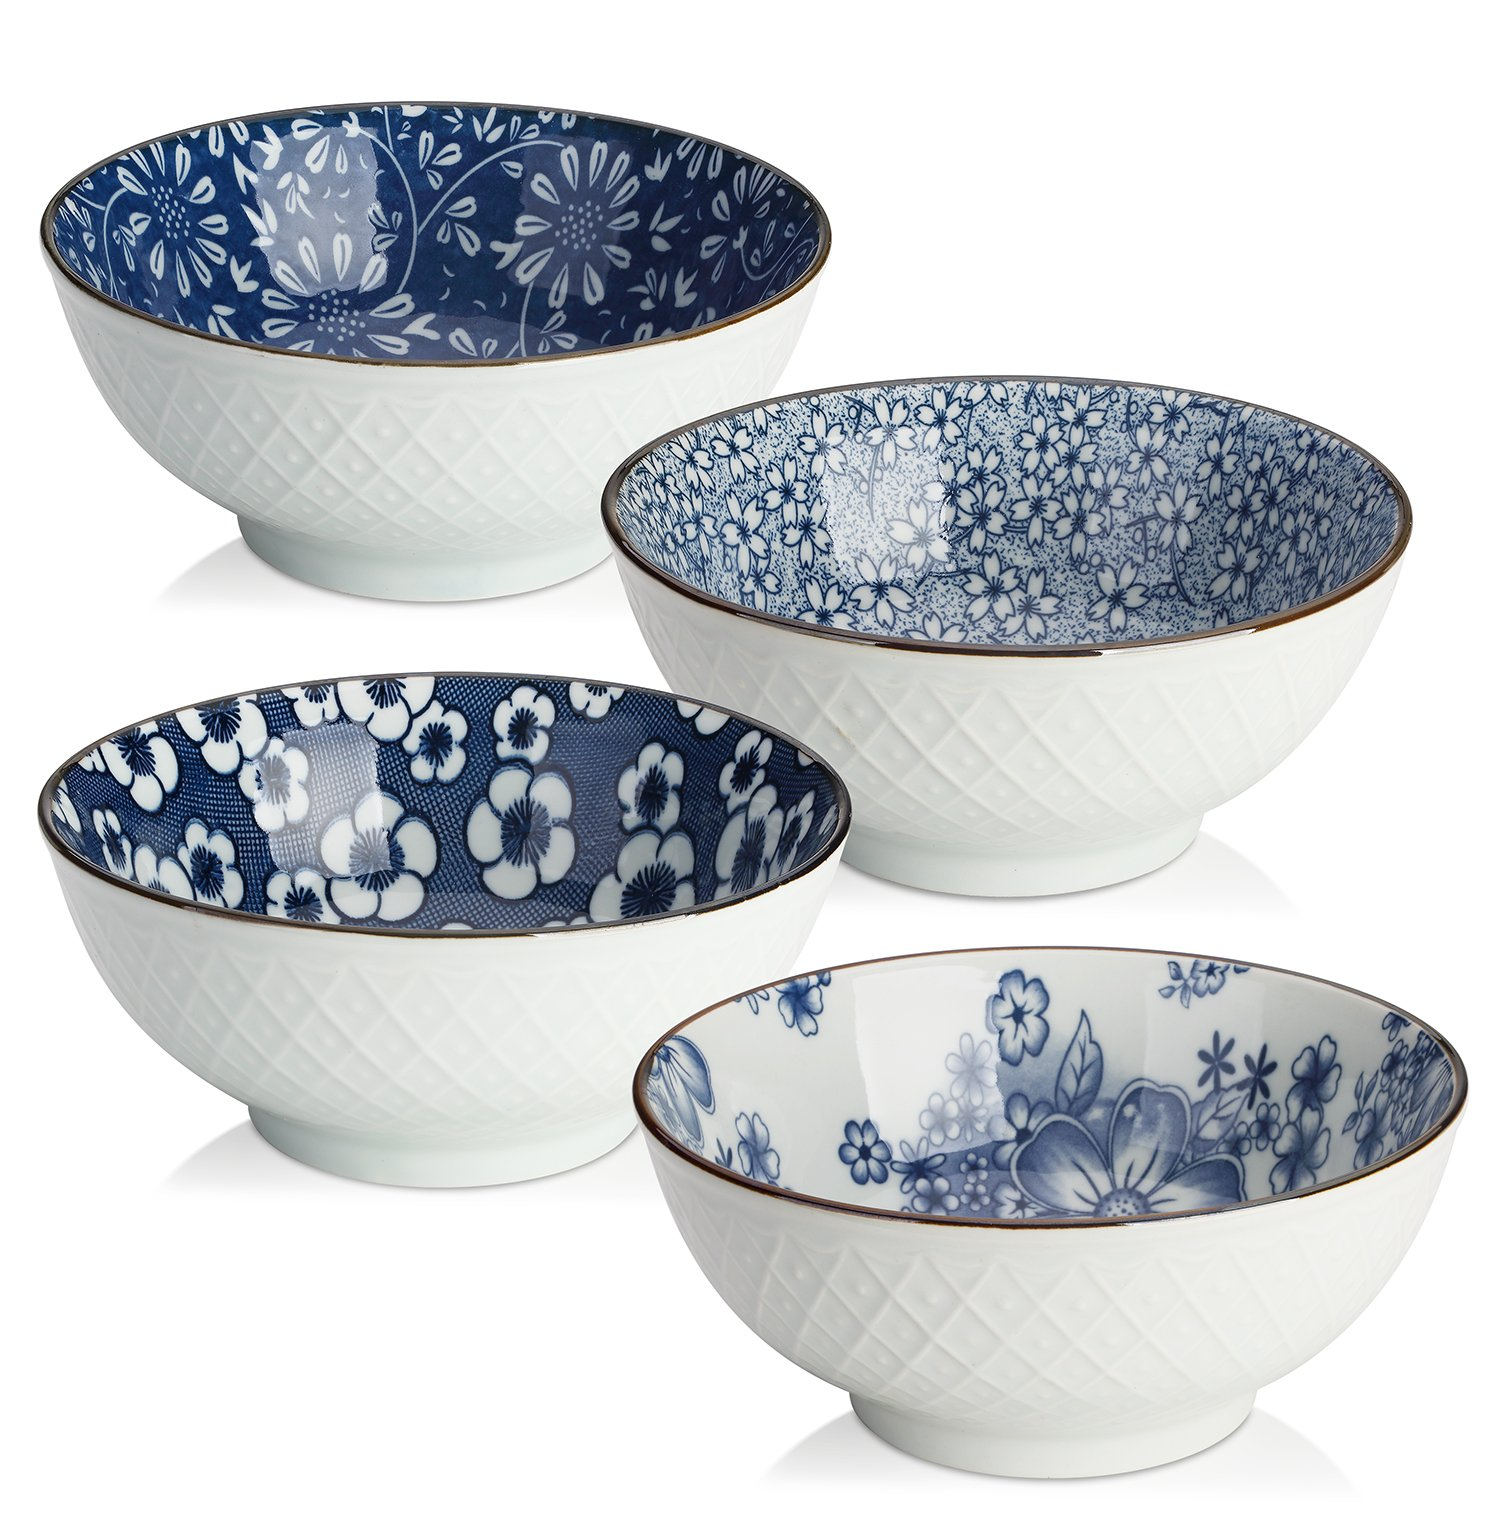 DOWAN Ceramic Cereal, Soup, or Pasta Bowls, Set of 4 Assorted Designs, Blue and White